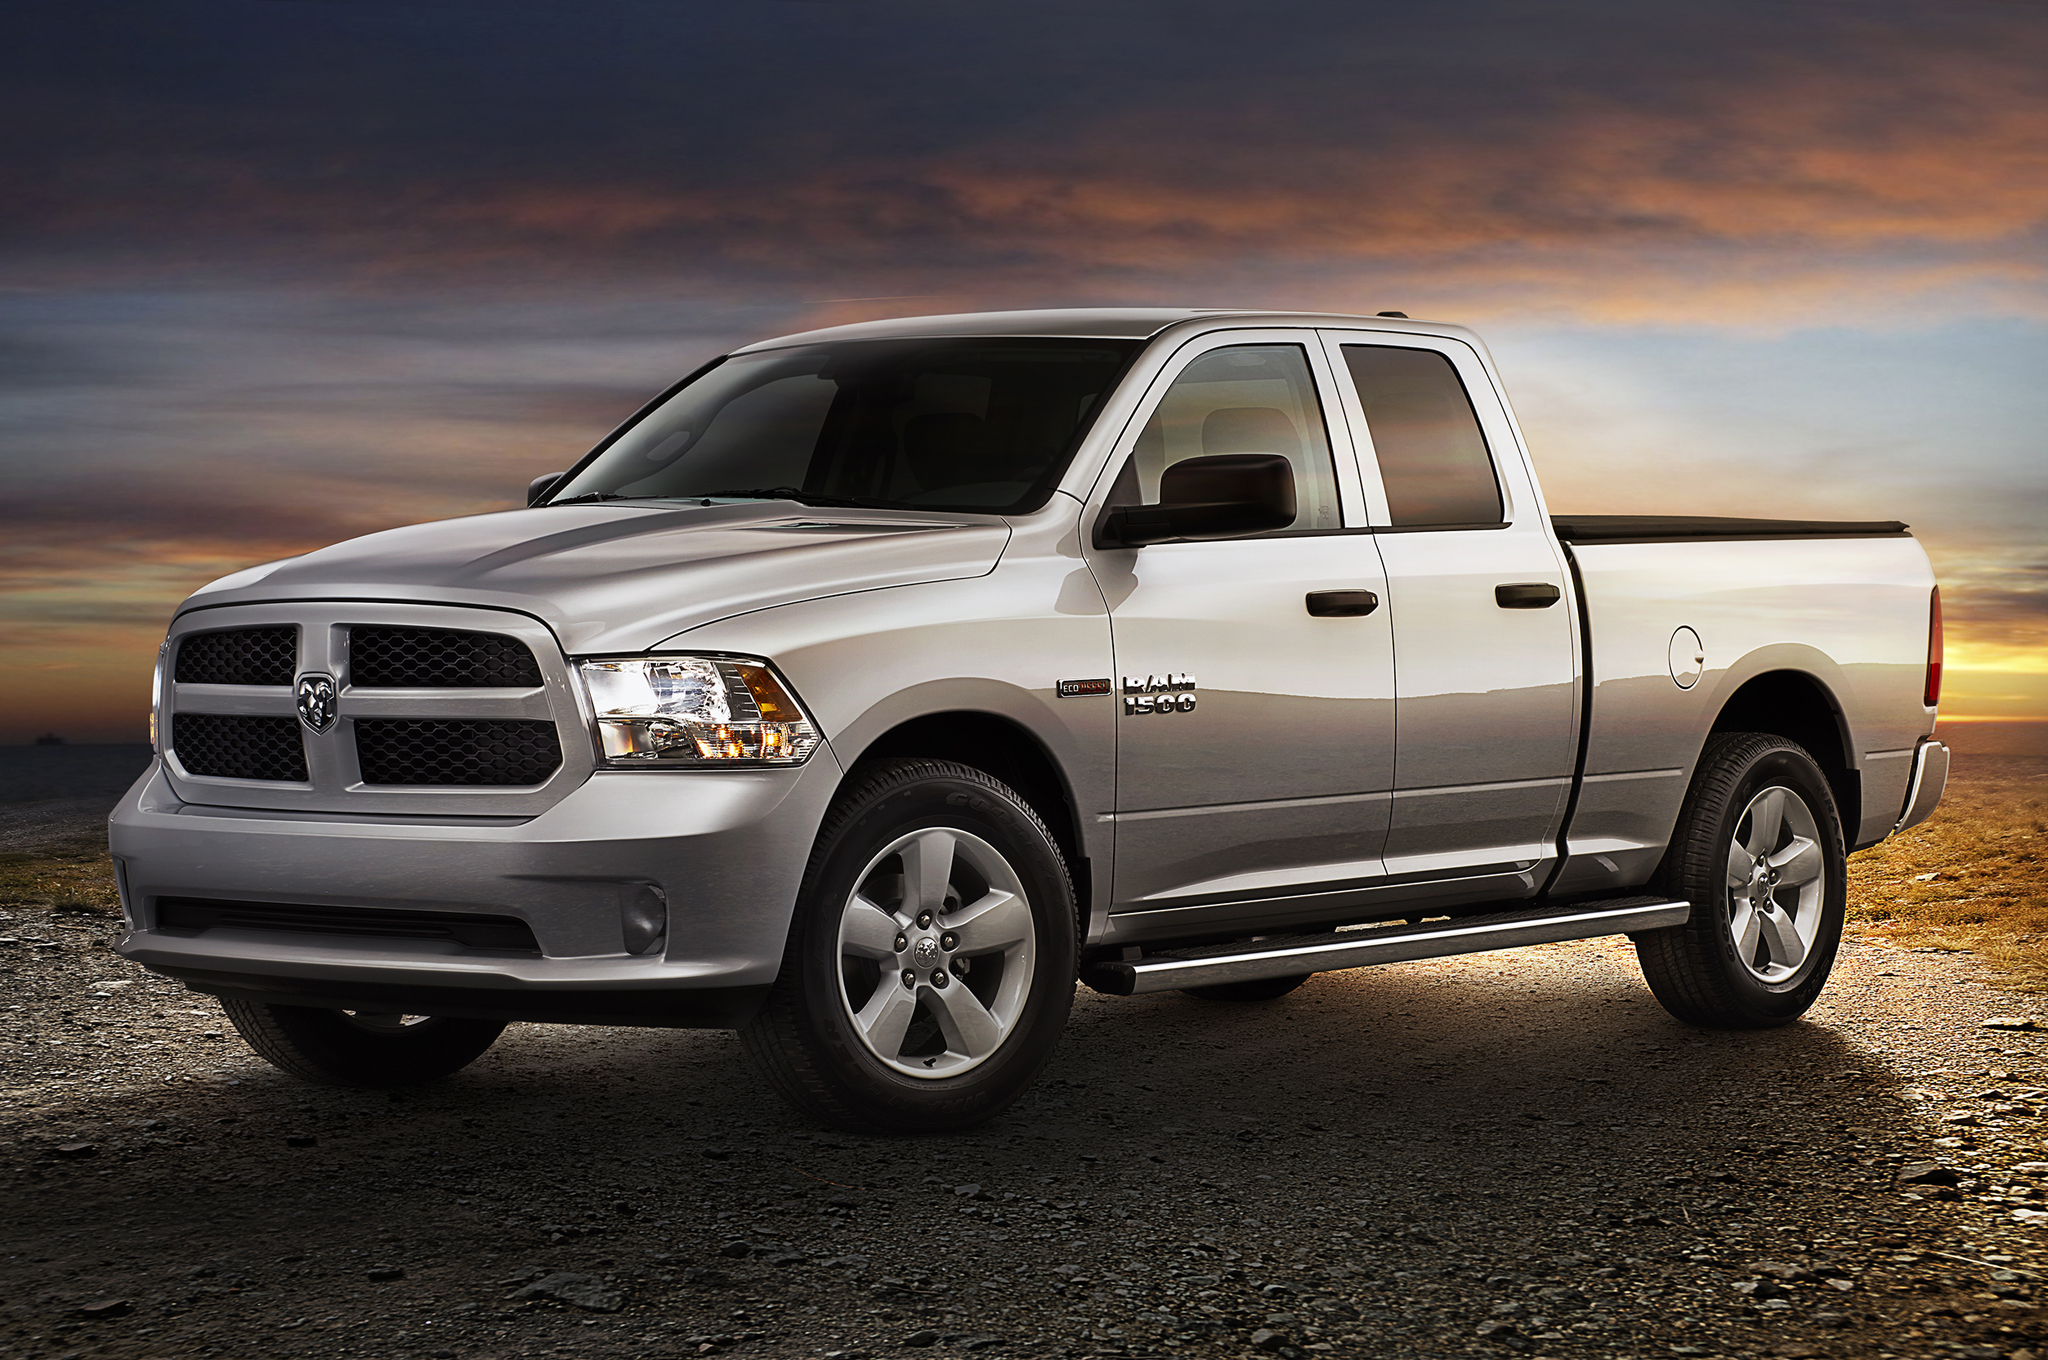 Ram Adds 29-MPG EcoDiesel 1500 HFE to Half-Ton Truck Lineup